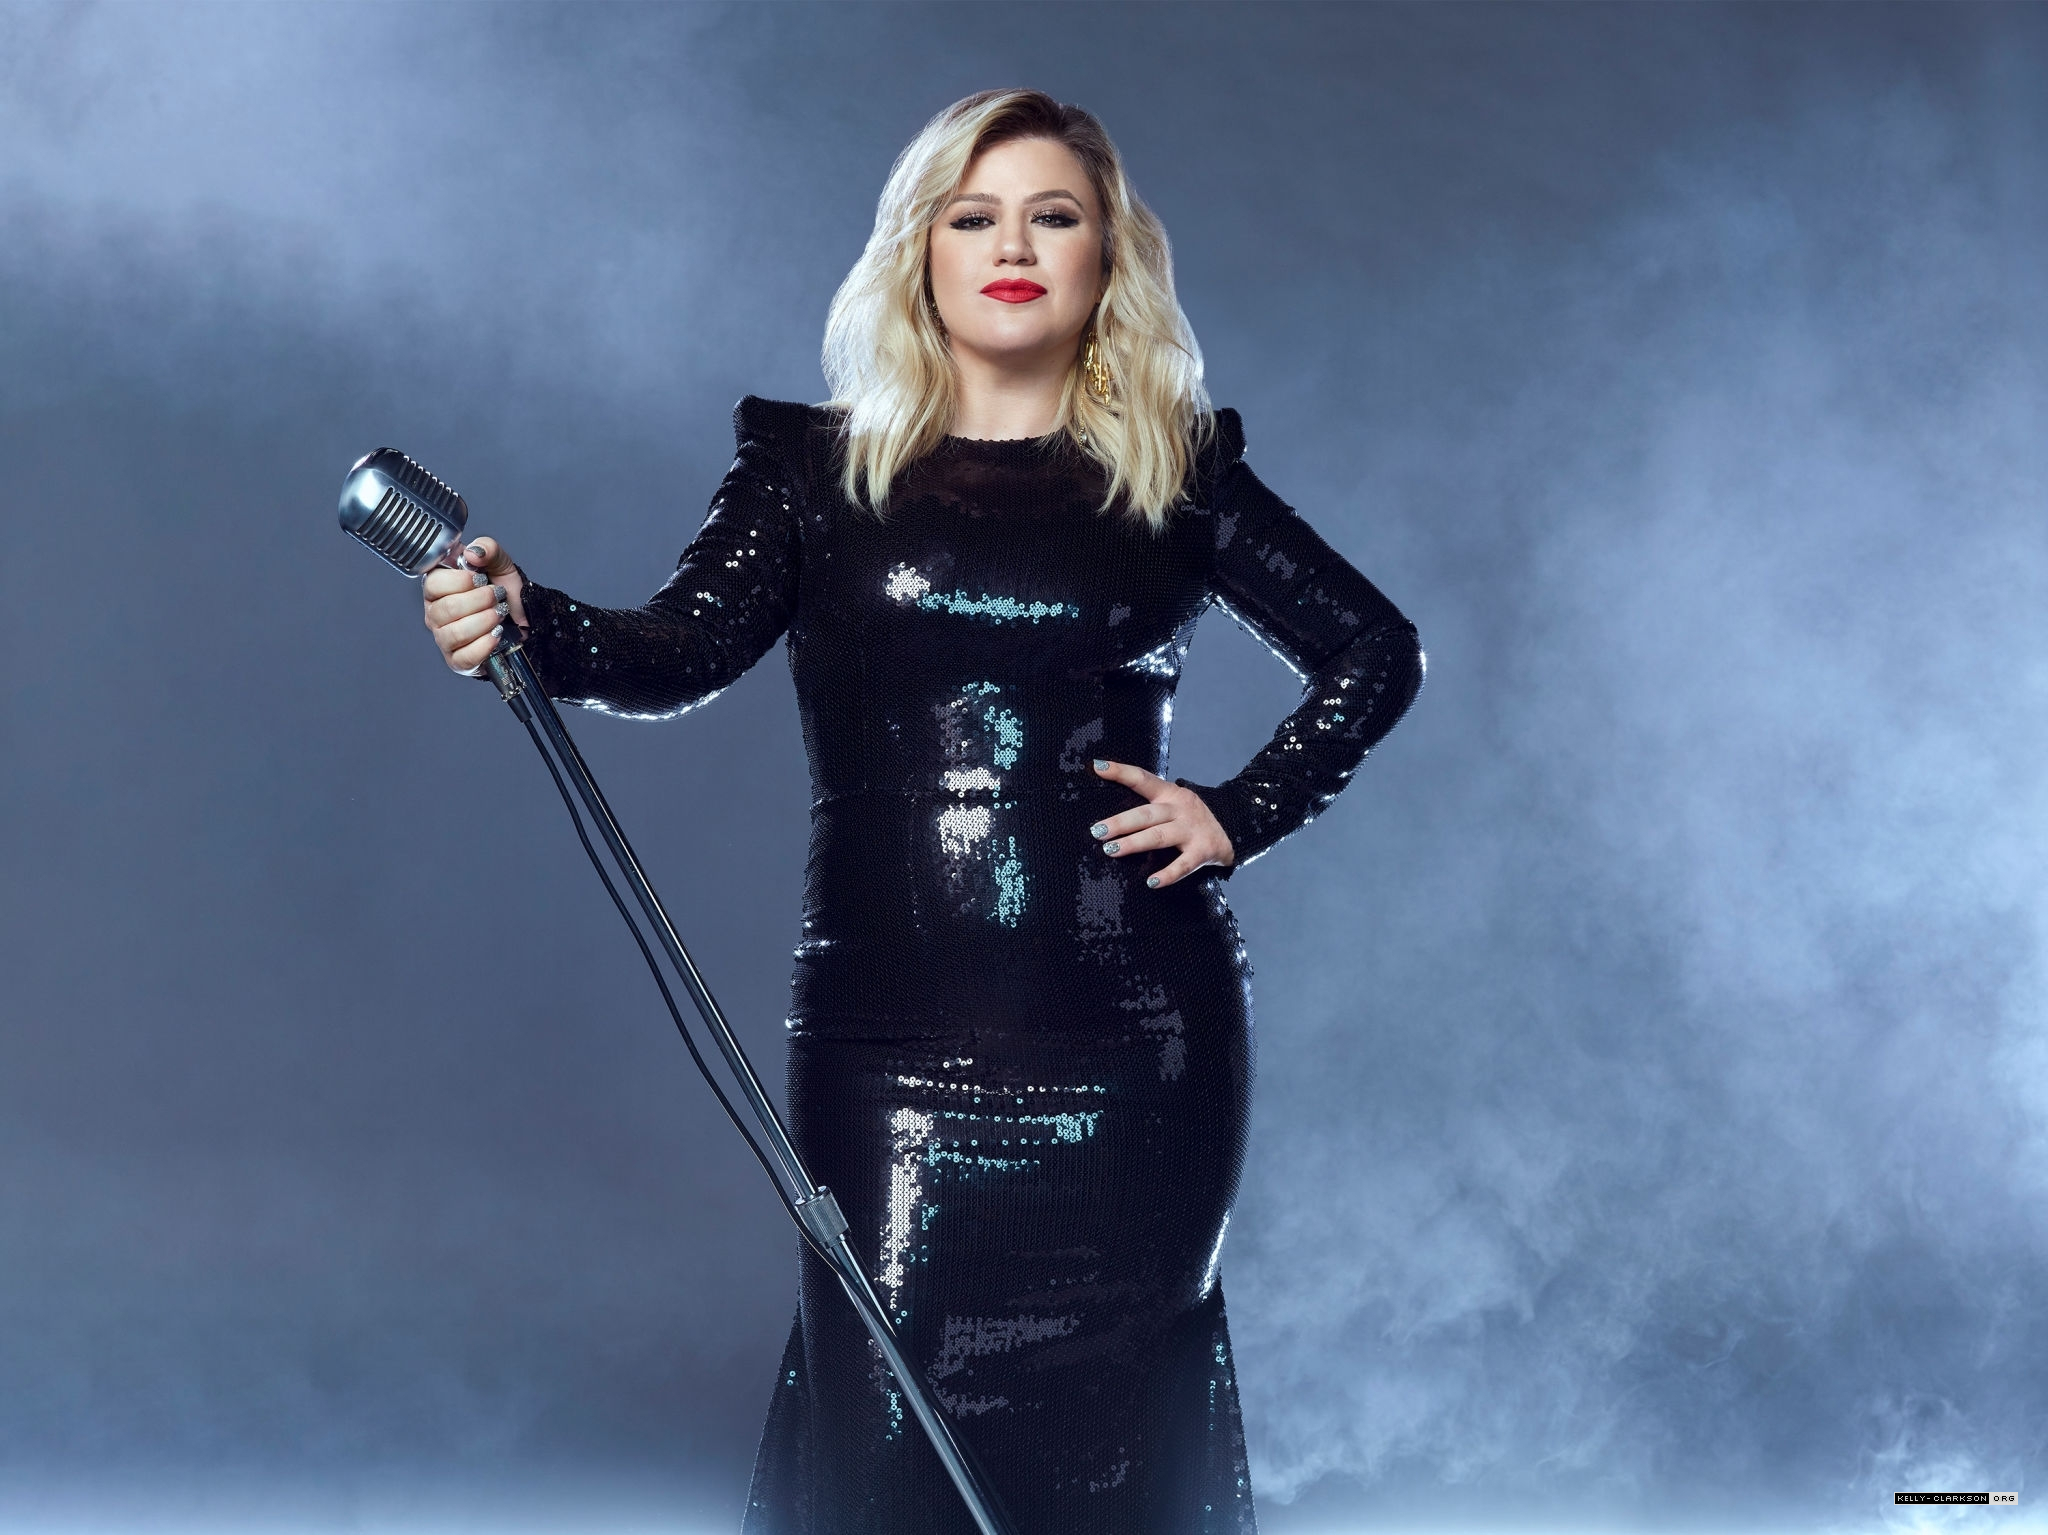 kelly-clarkson-in-black-dress-hosting-the-2020-billboard-music-awards